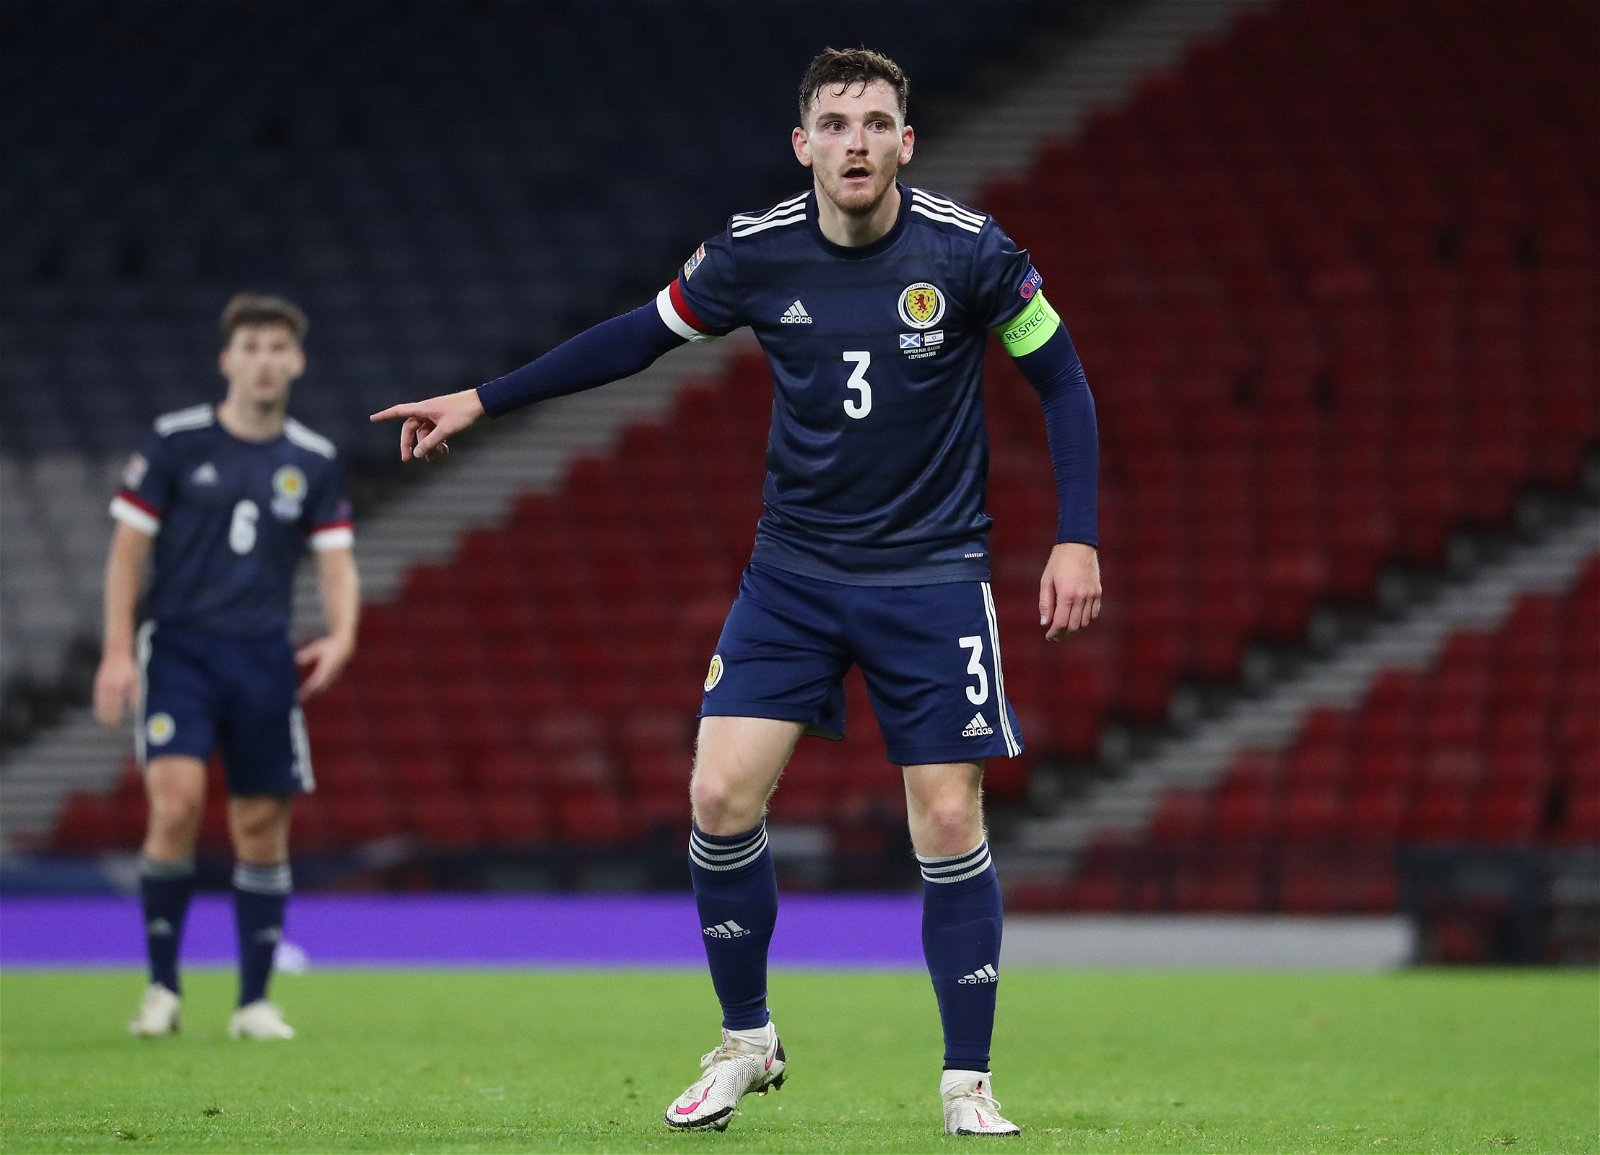 Andy Robertson in action for Scotland - Forget Adrian: Klopp must adapt £57.6m-rated Liverpool man's role or risk Villa repeat – opinion